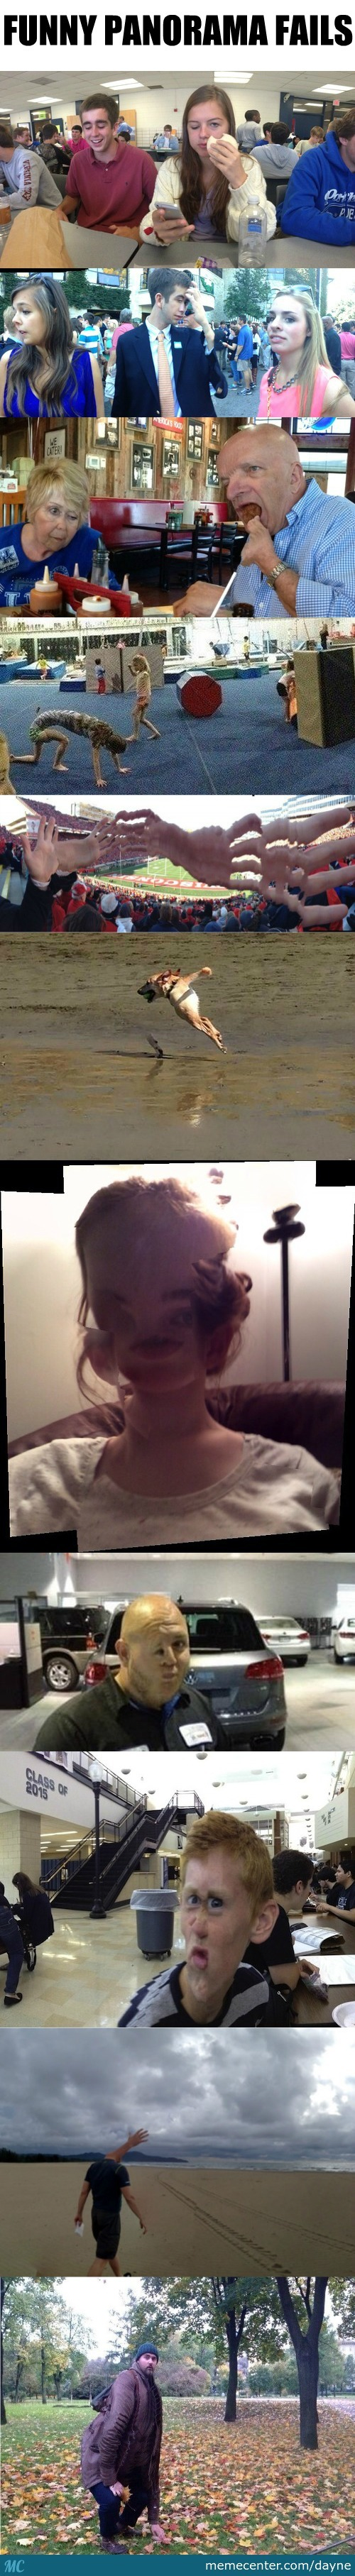 The Funniest Panorama Fails Ever